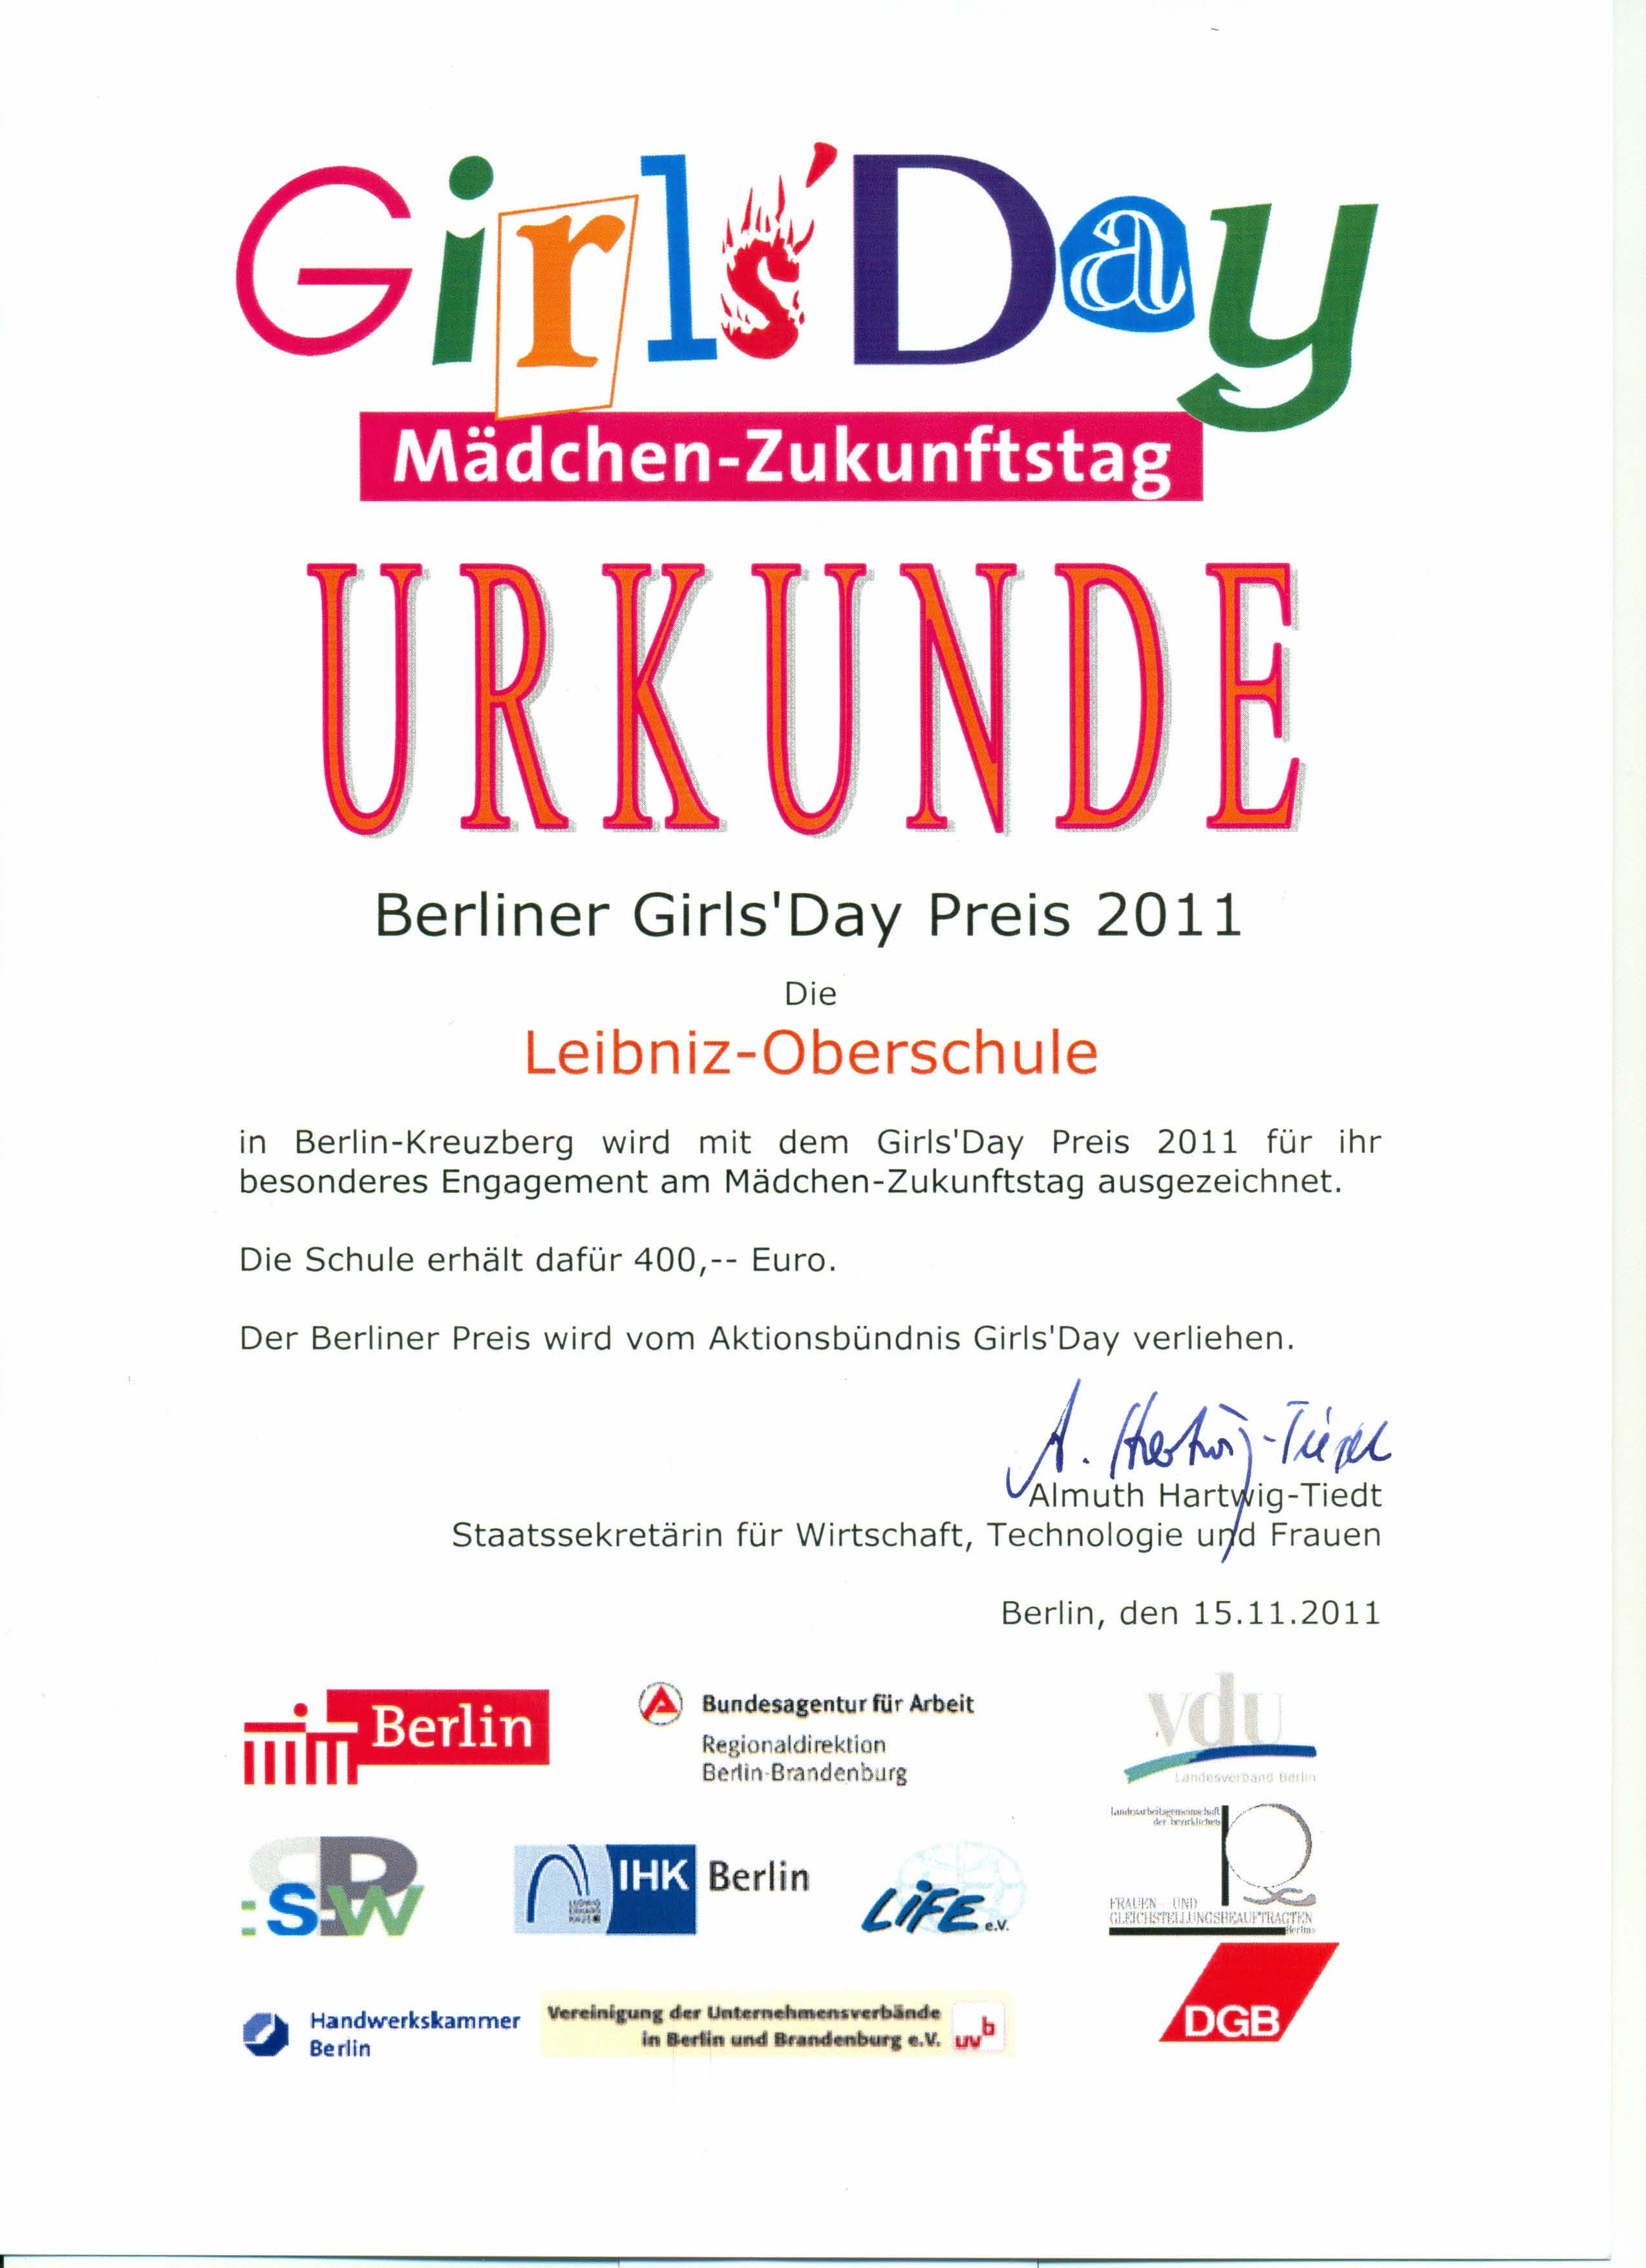 Urkunde_GirlsDay